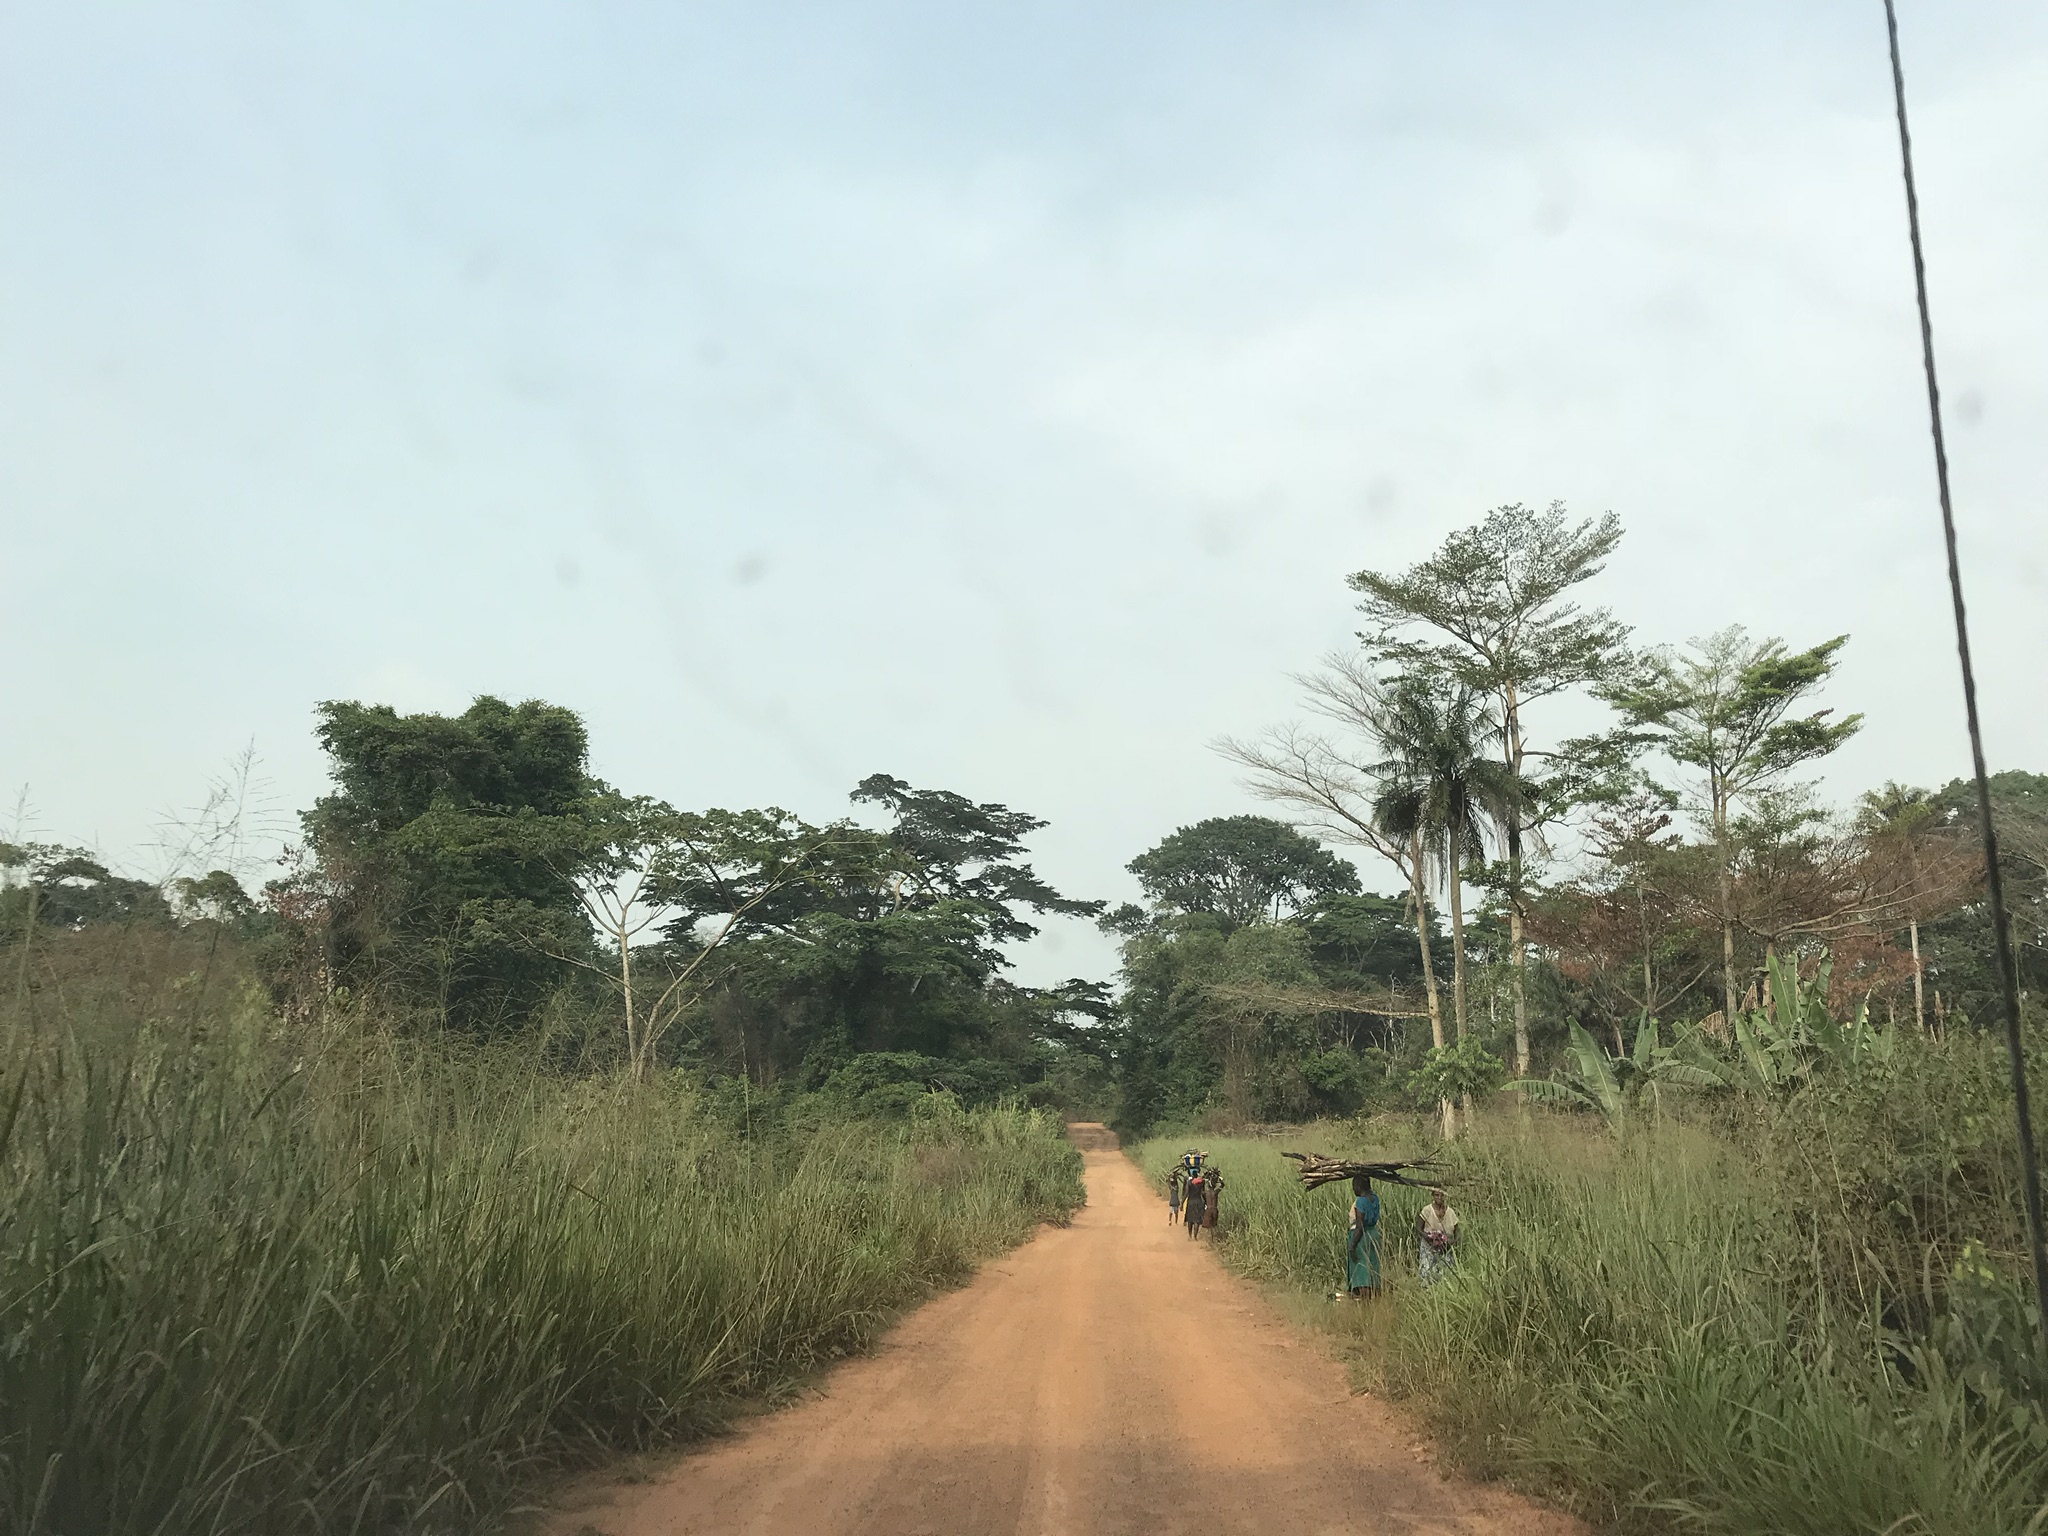 A smooth patch on the road to Kailahun